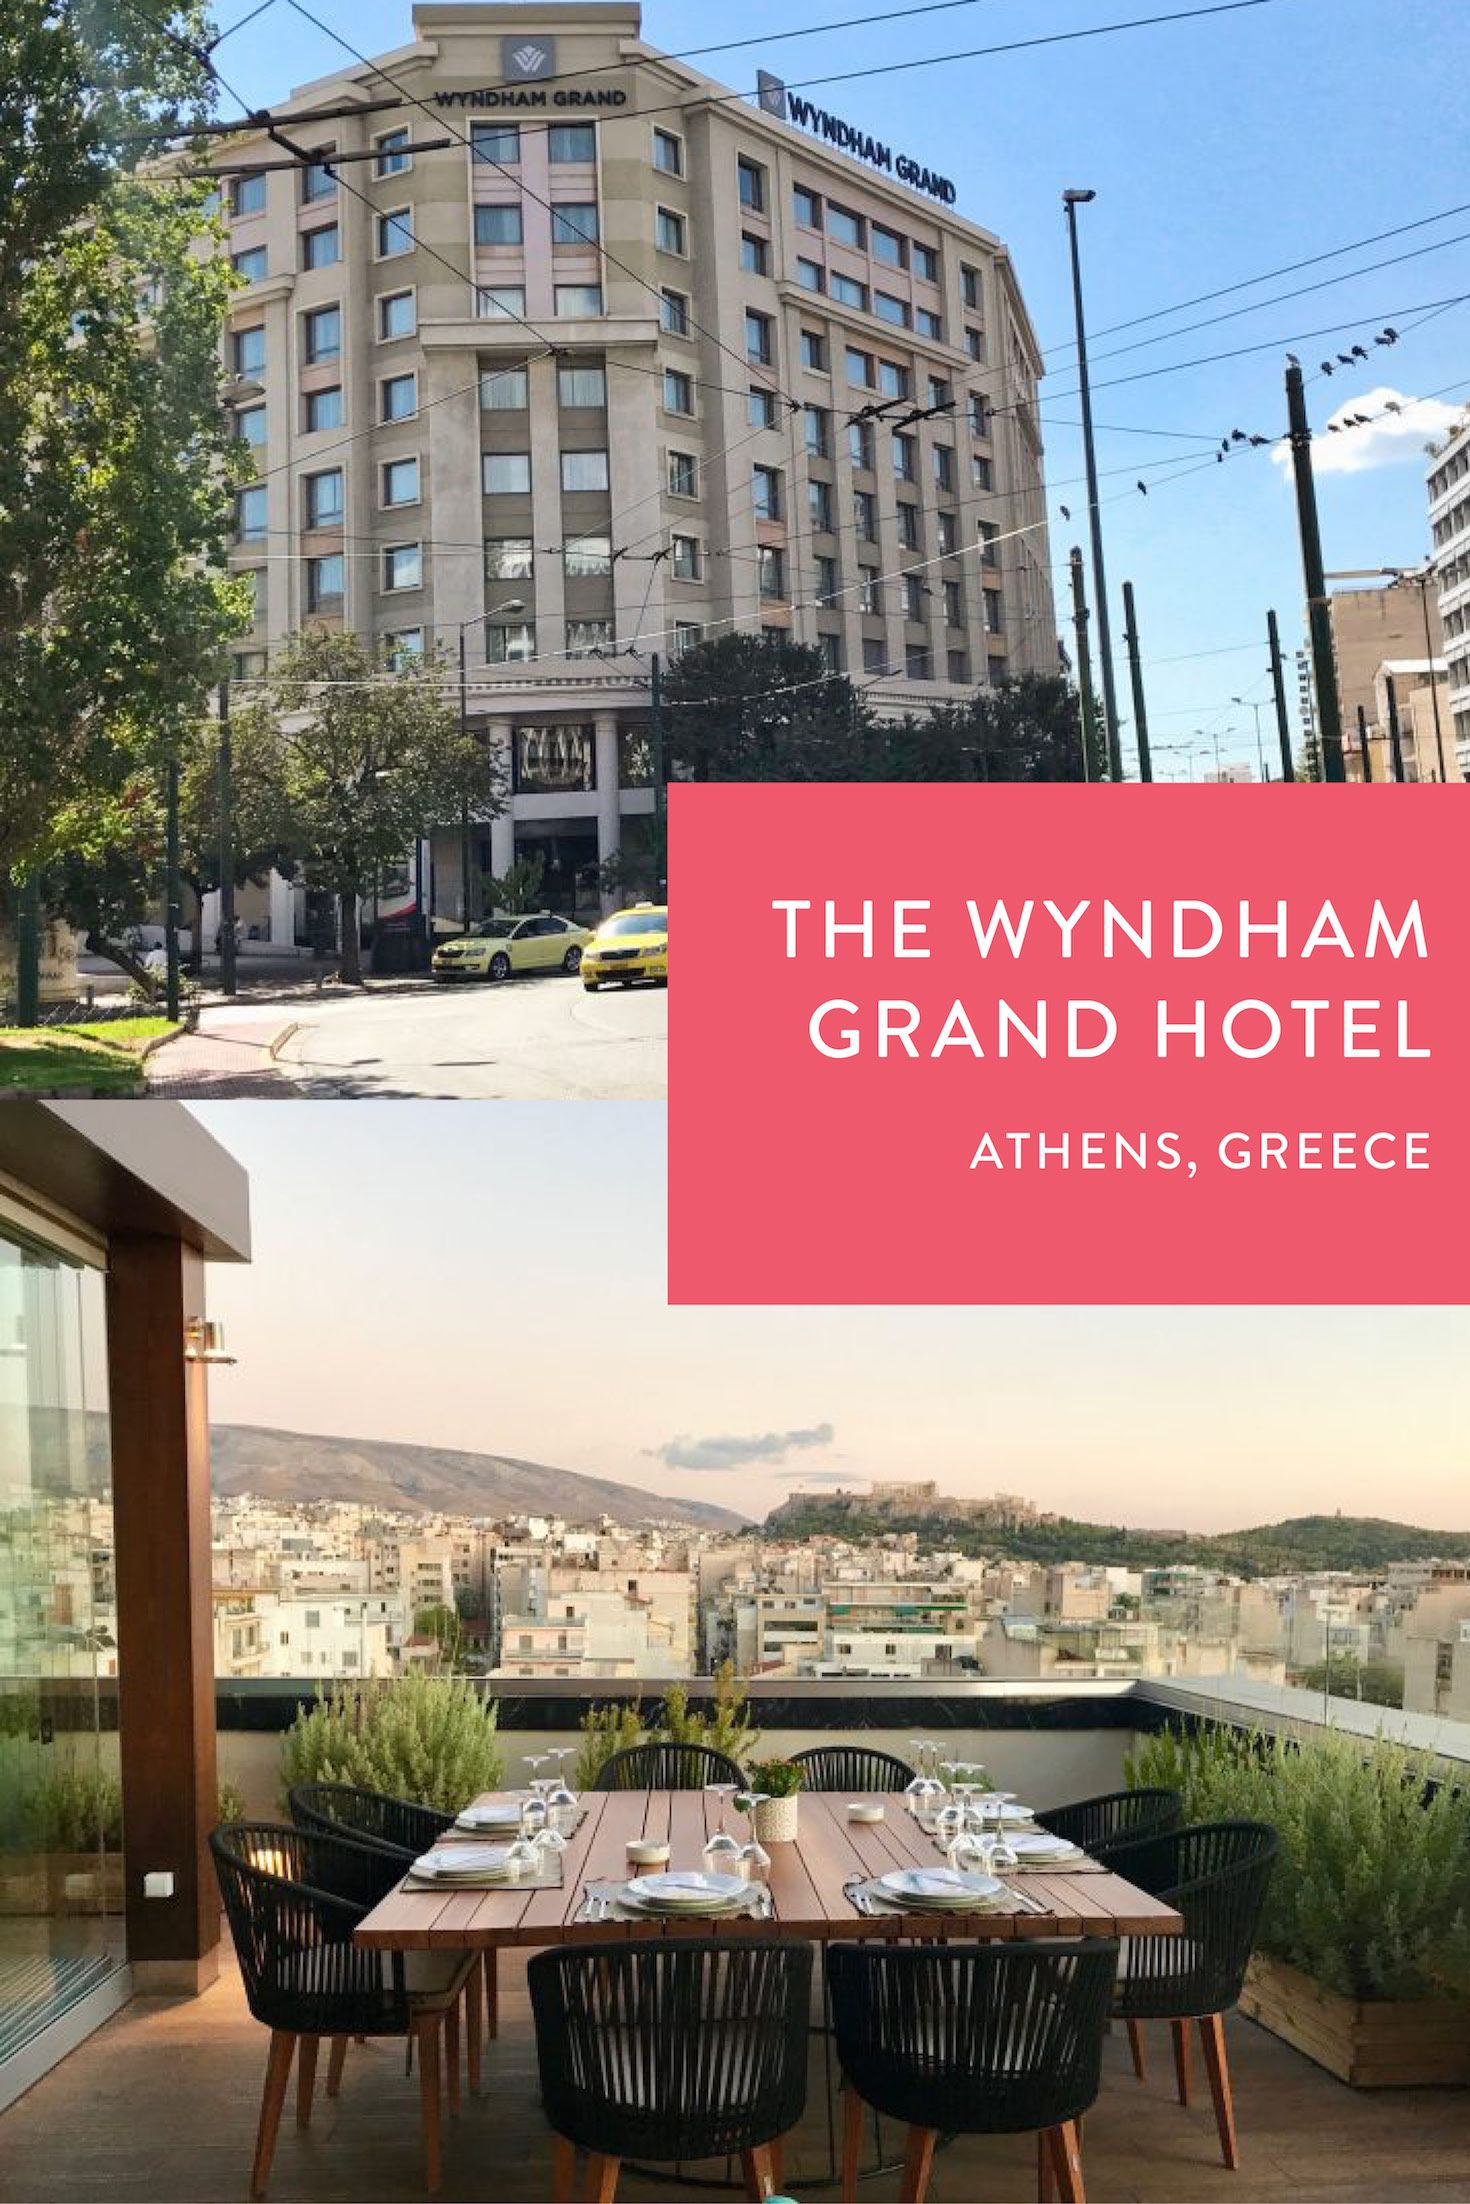 Finding Affordable Luxury At The Wyndham Grand Hotel In Athens Greece